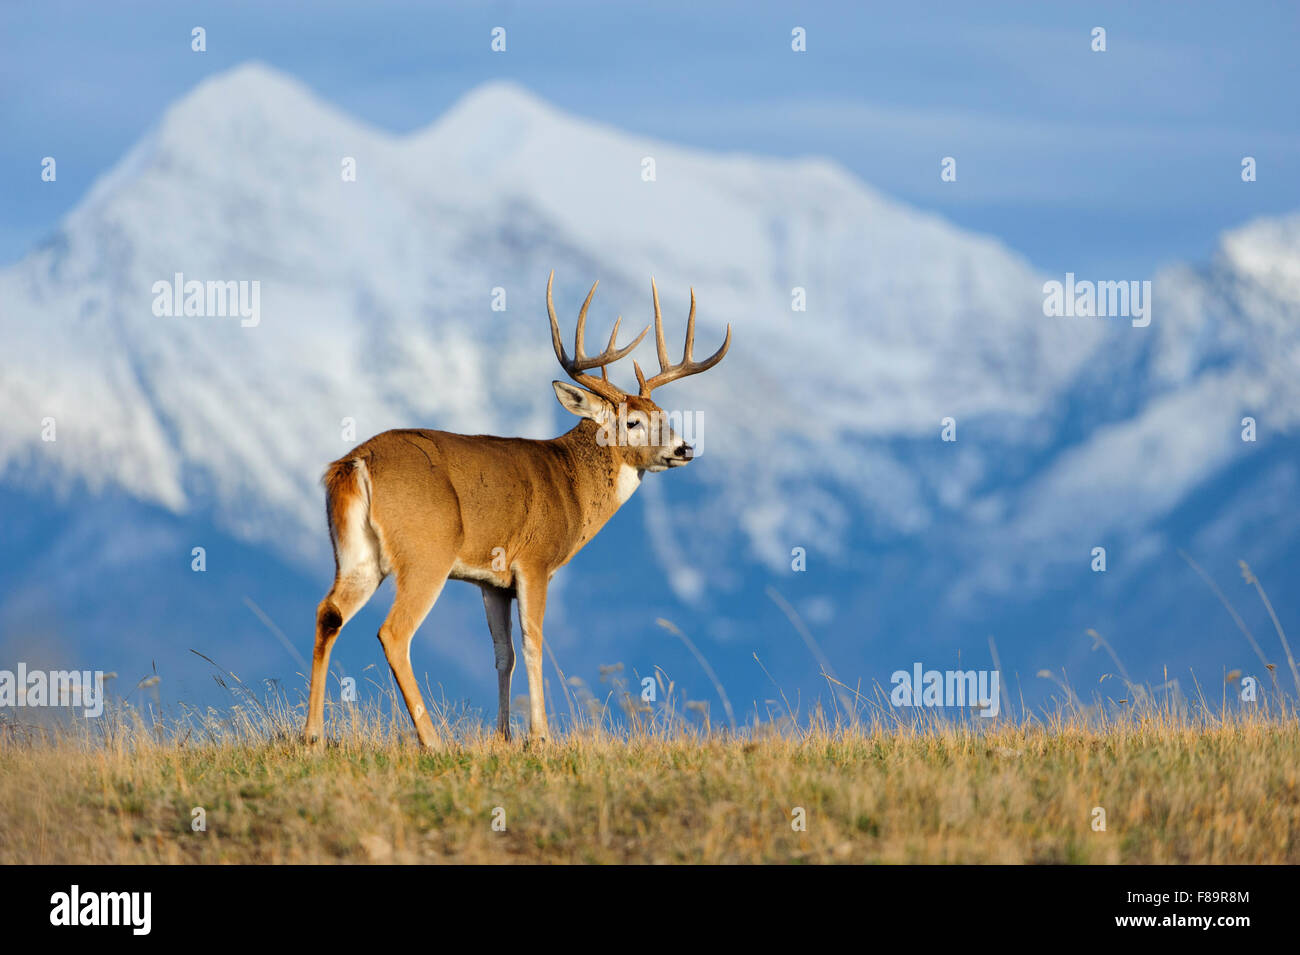 A white-tailed buck (Odocoileus virginianus) stands in front of snow capped mountains, North America - Stock Image